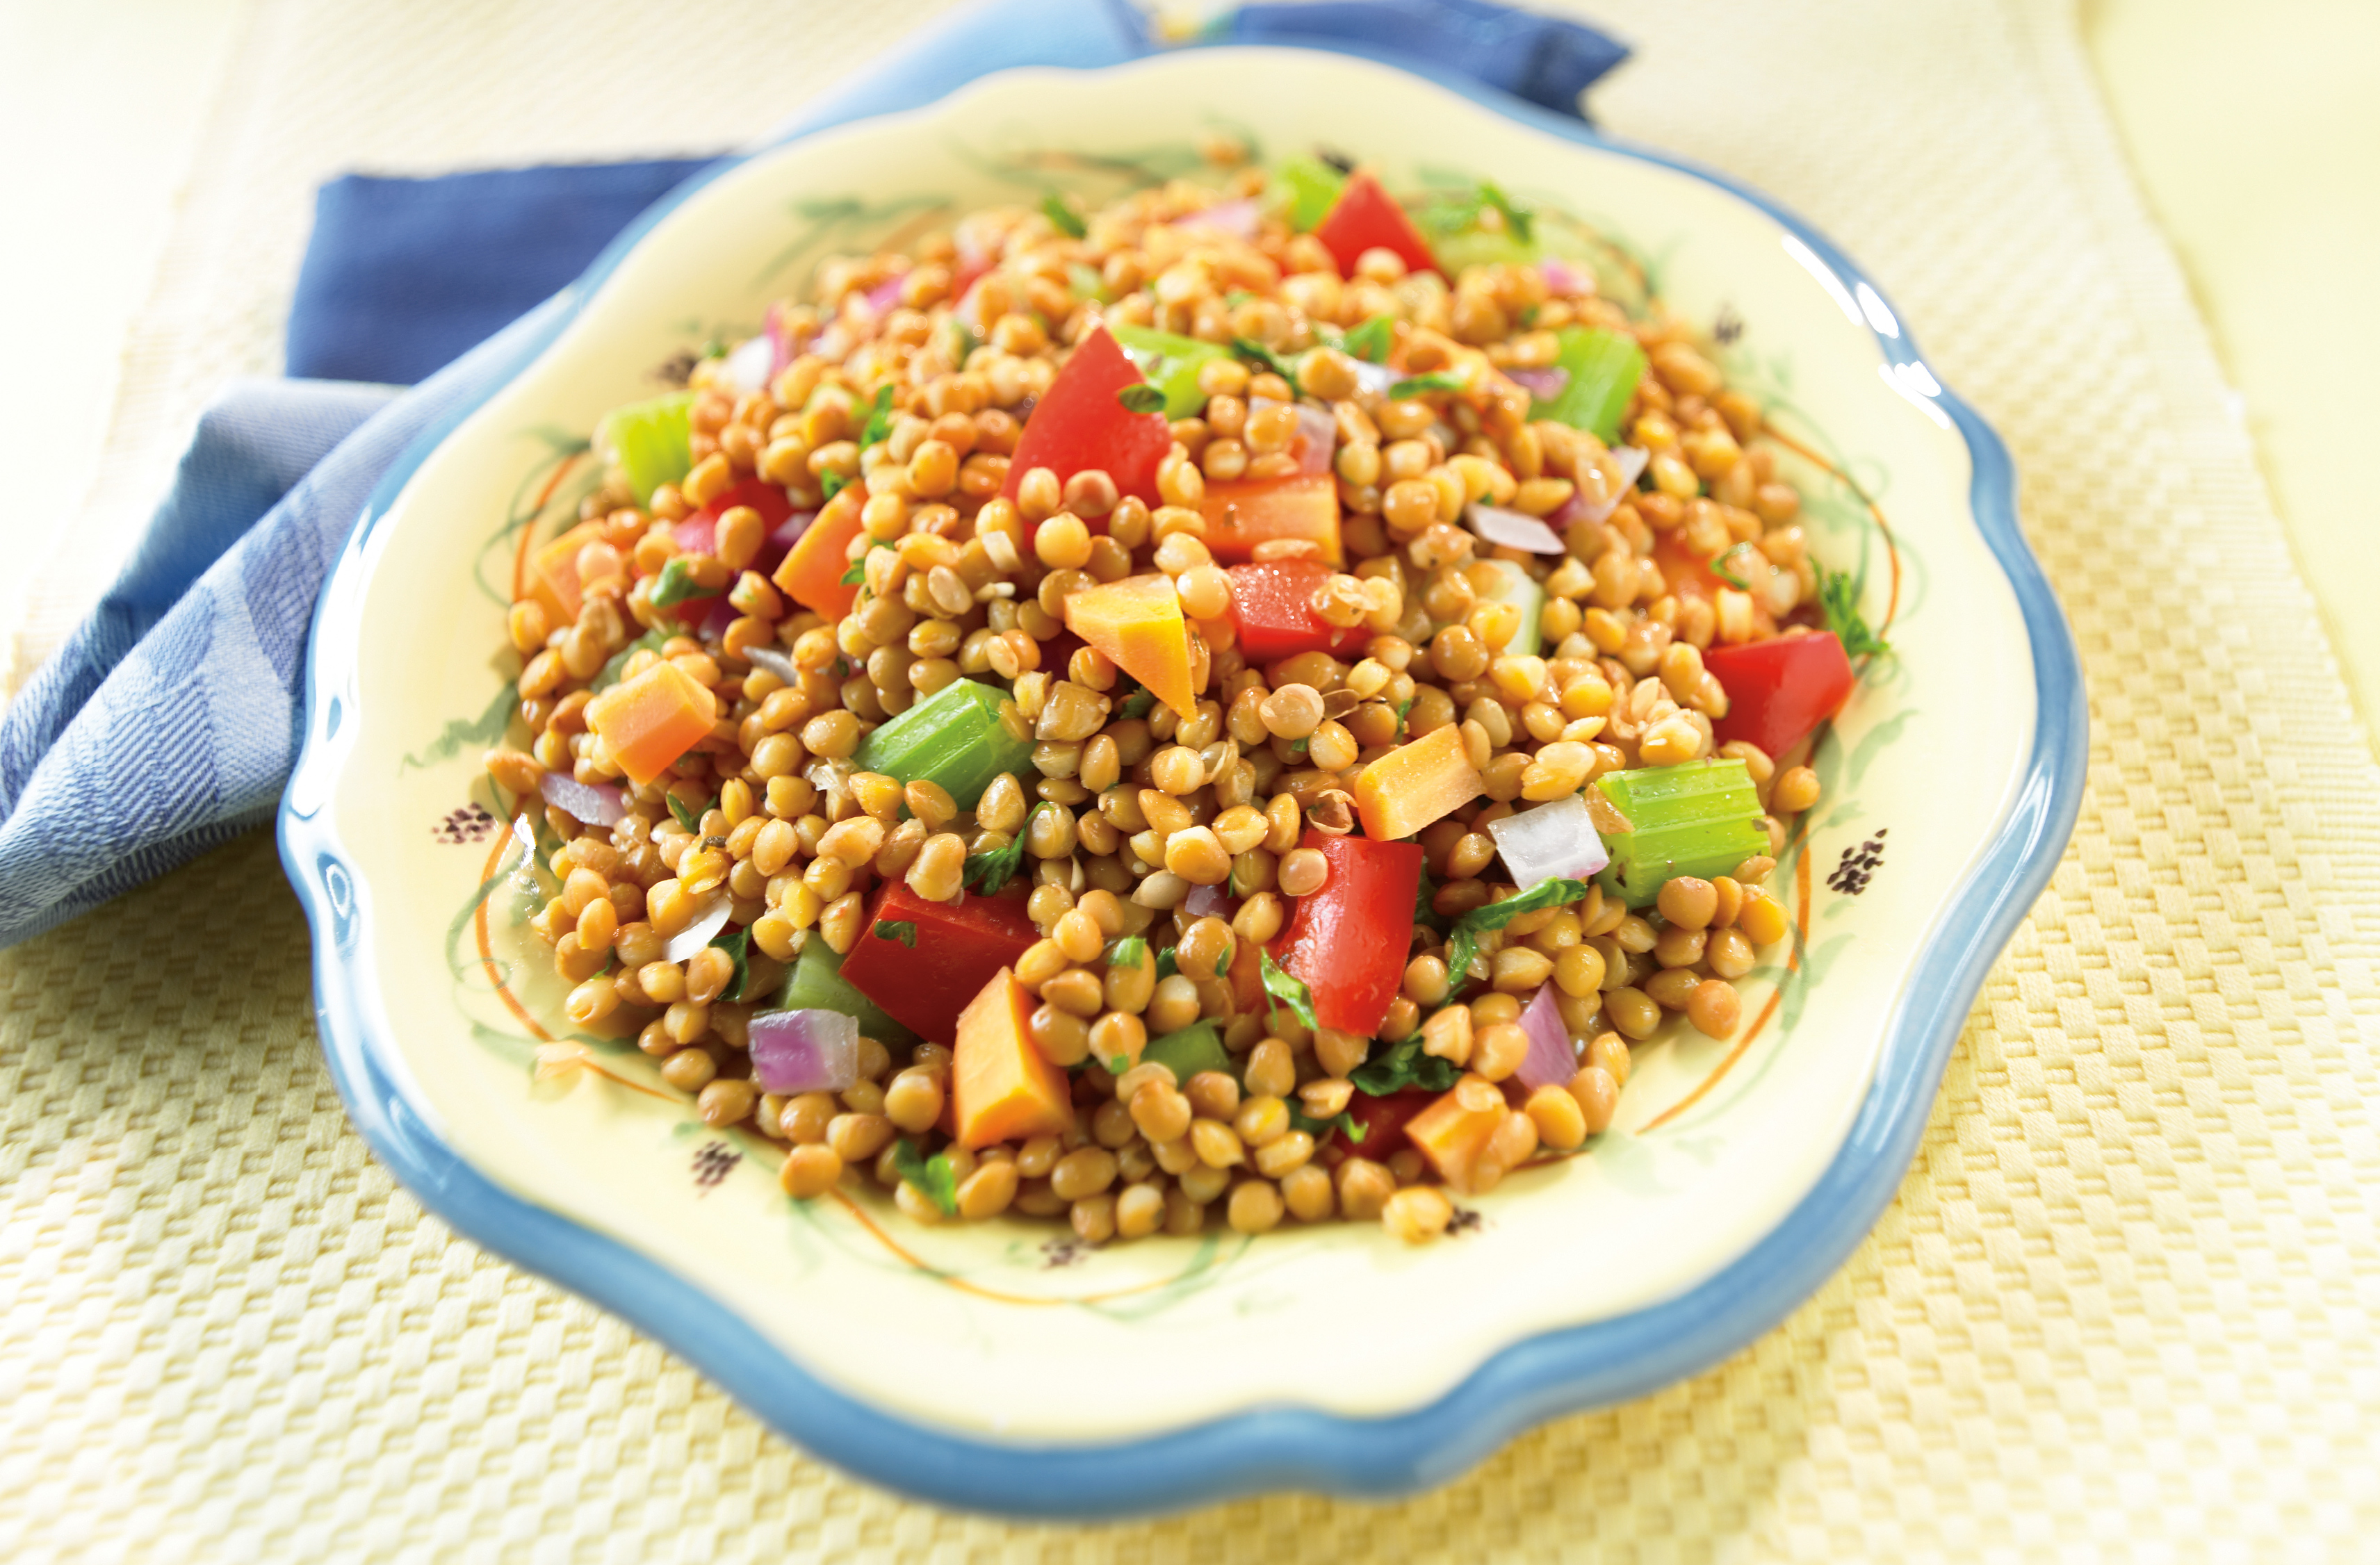 A bowl of warm lentil salad with red onion, carrot, celery & red pepper